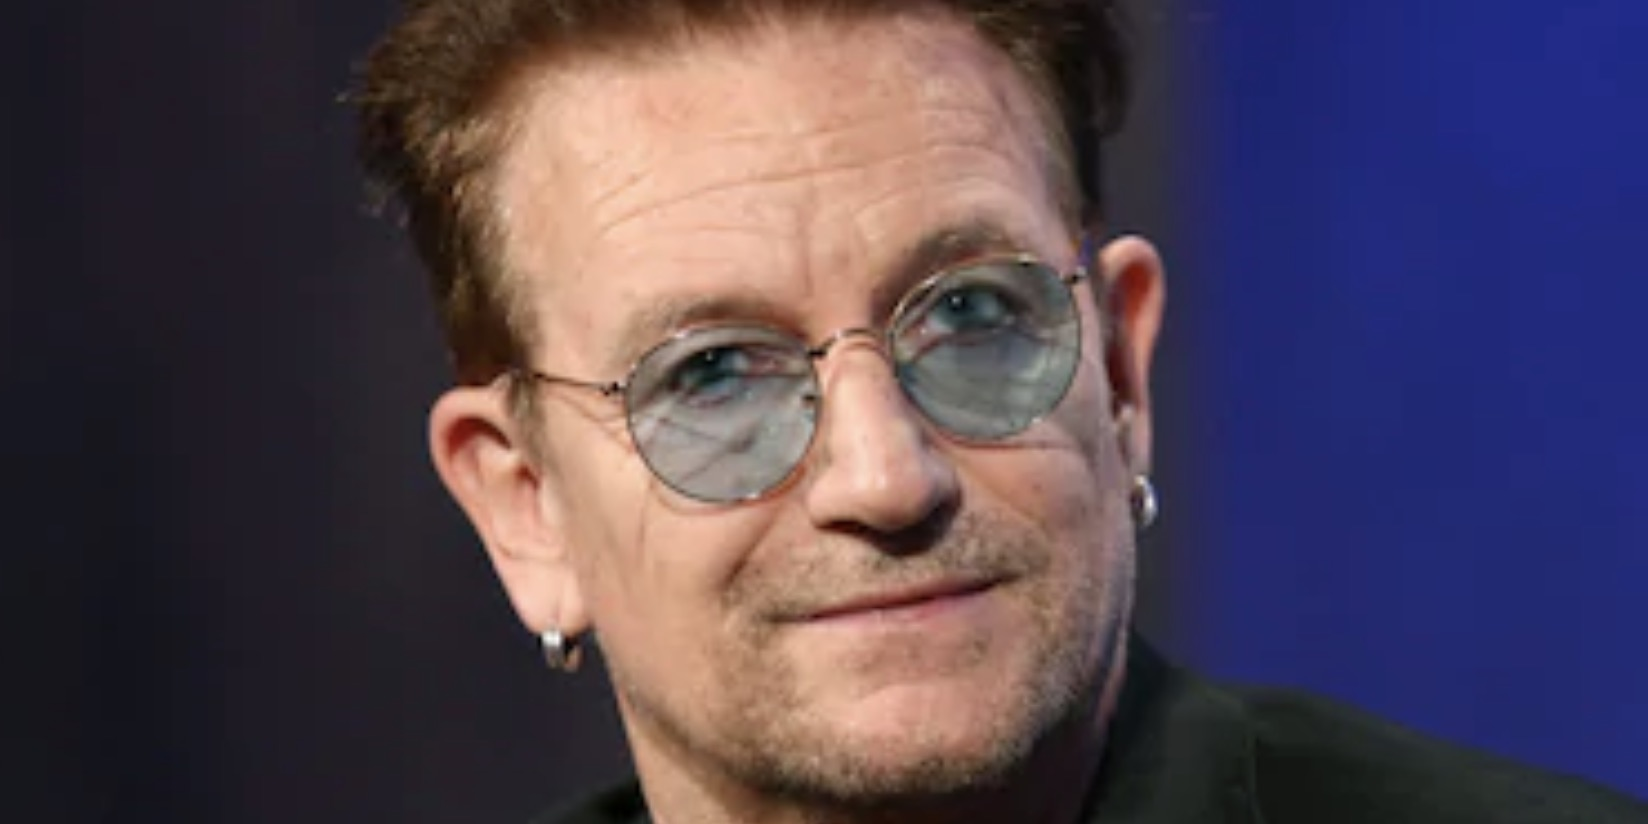 recent images of iconic singers, Music, bono